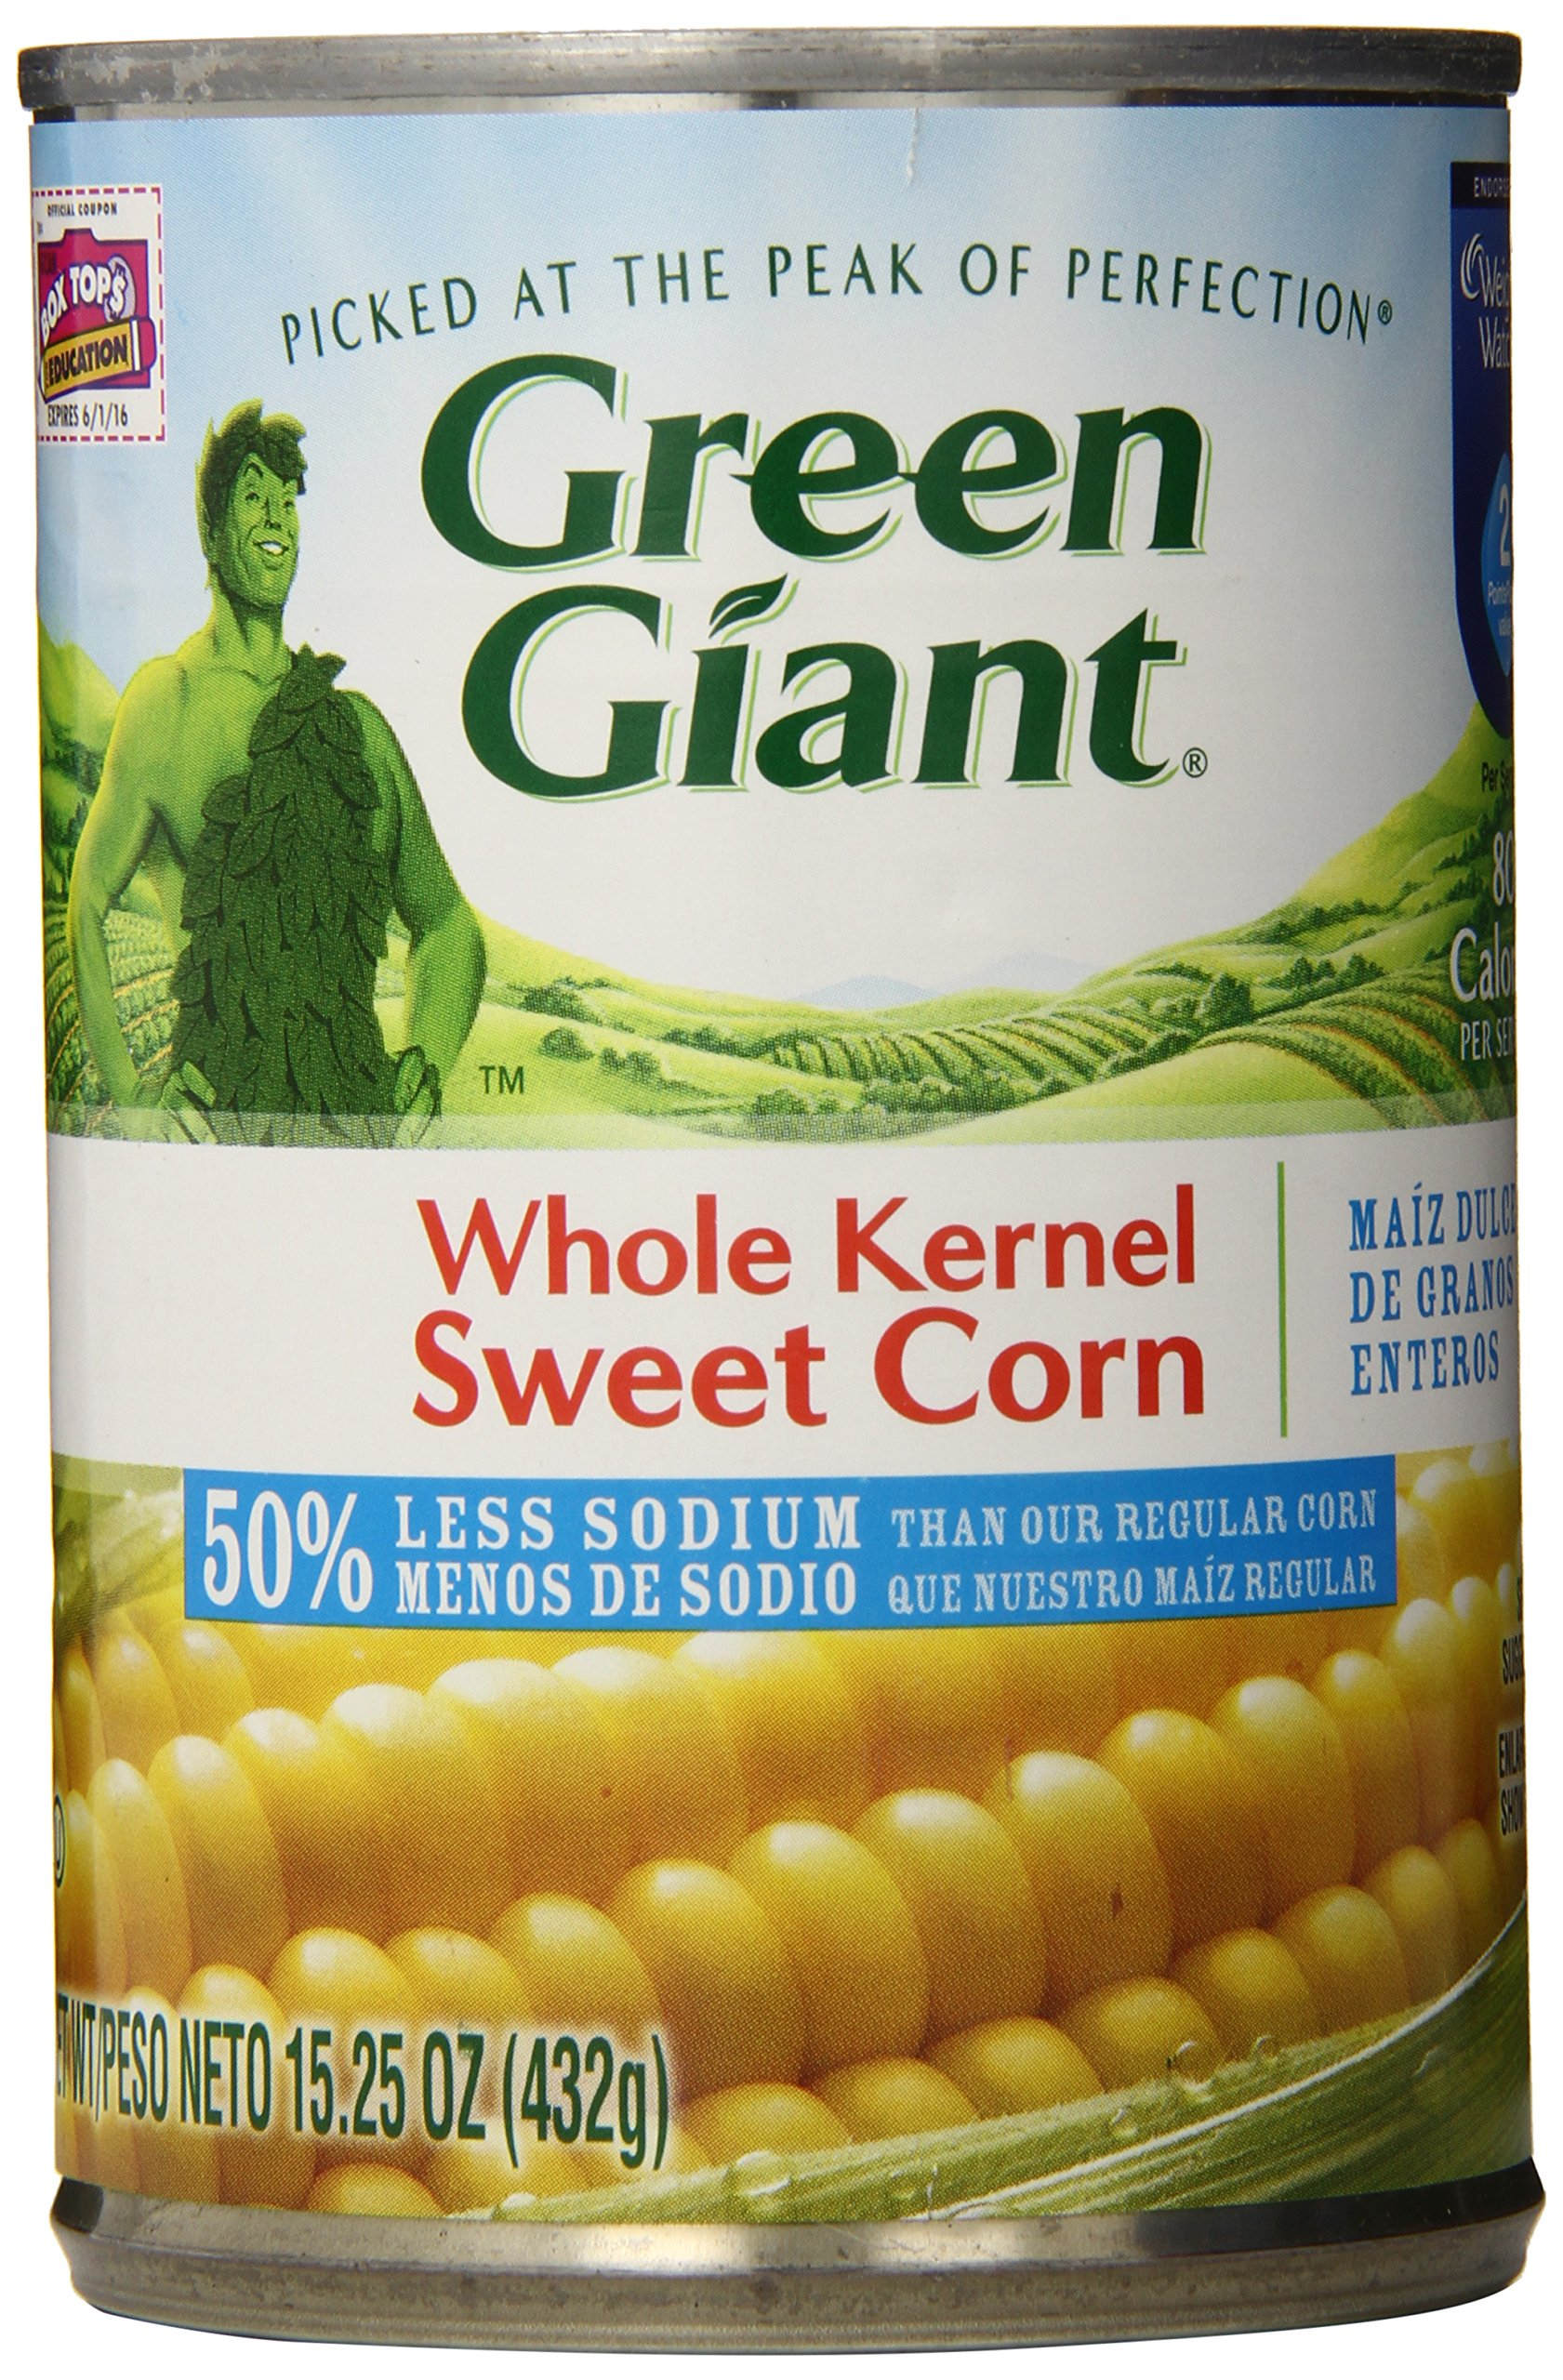 Green Giant Whole Kernel Sweet Corn, Low Sodium, 15.25 Ounce (Pack of 12)